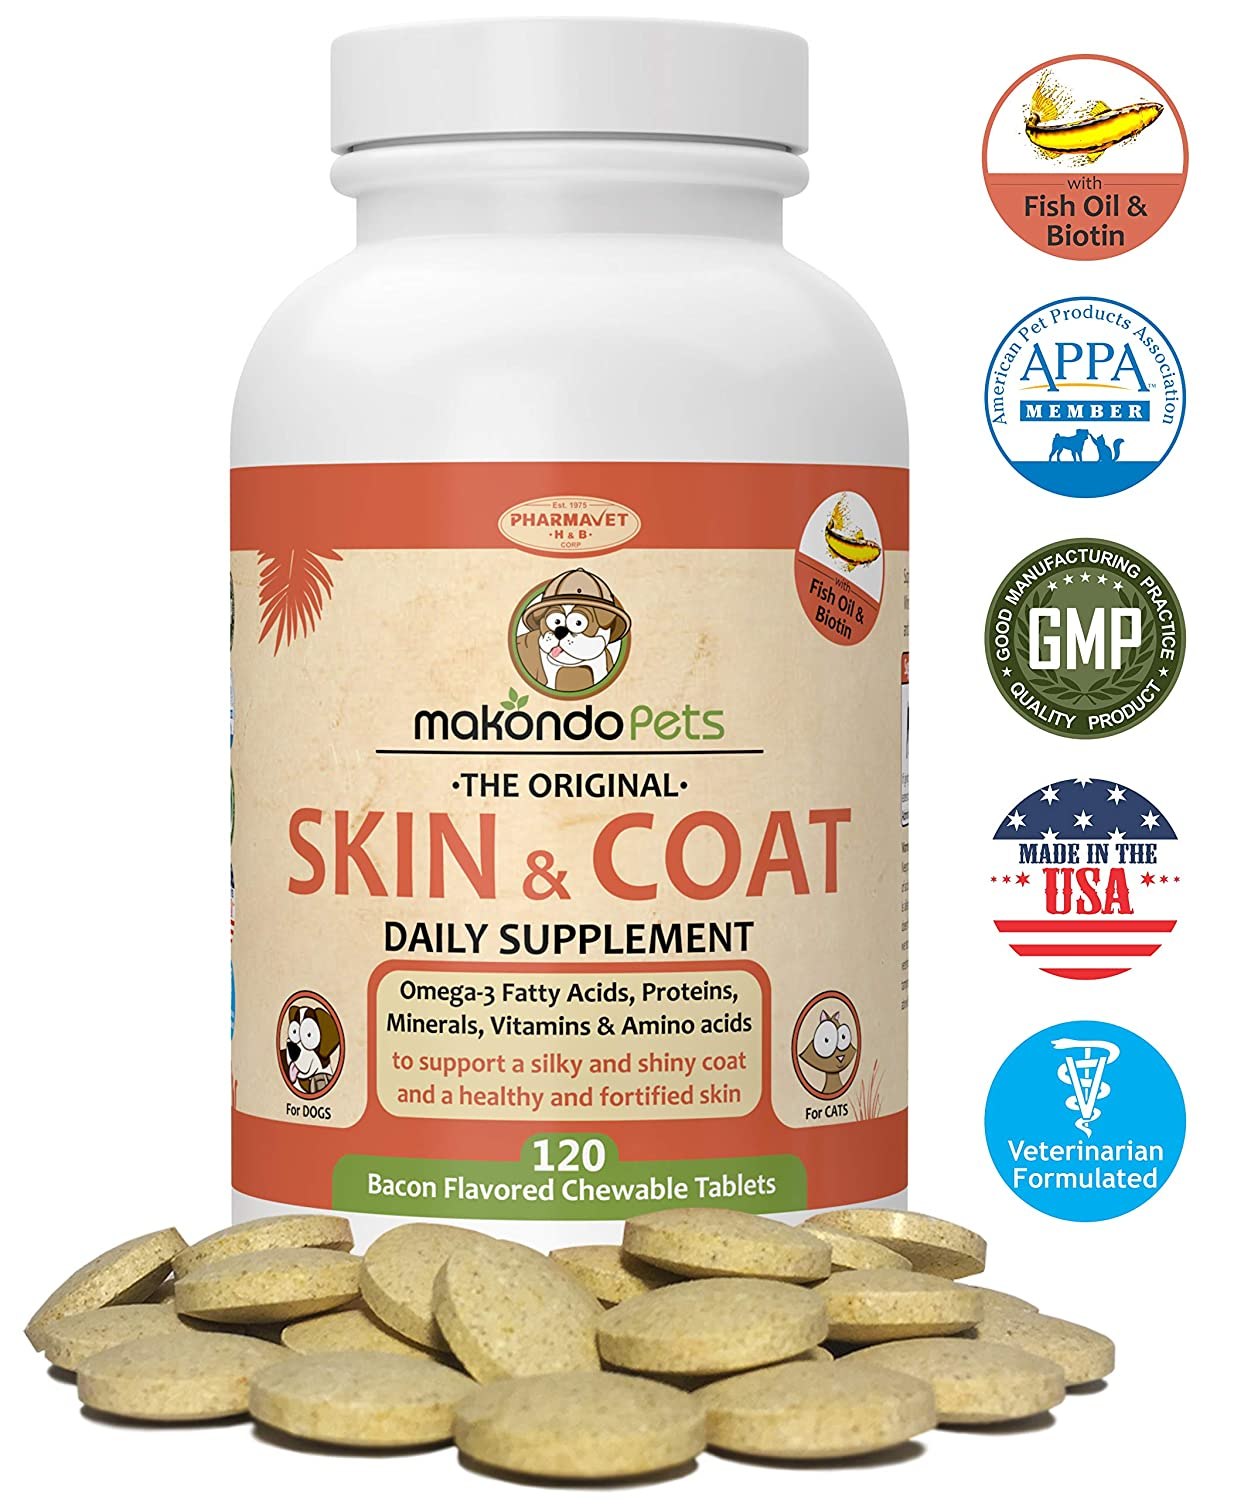 Makondo Pets Skin and Coat Supplement for Dogs and Cats – Fish Oil for Dogs Fatty Acids, Vitamins, Amino Acids, Minerals Omega 3 for Dogs -Relieve Dog Dry Skin Itchy Dog Hot Spots Shedding